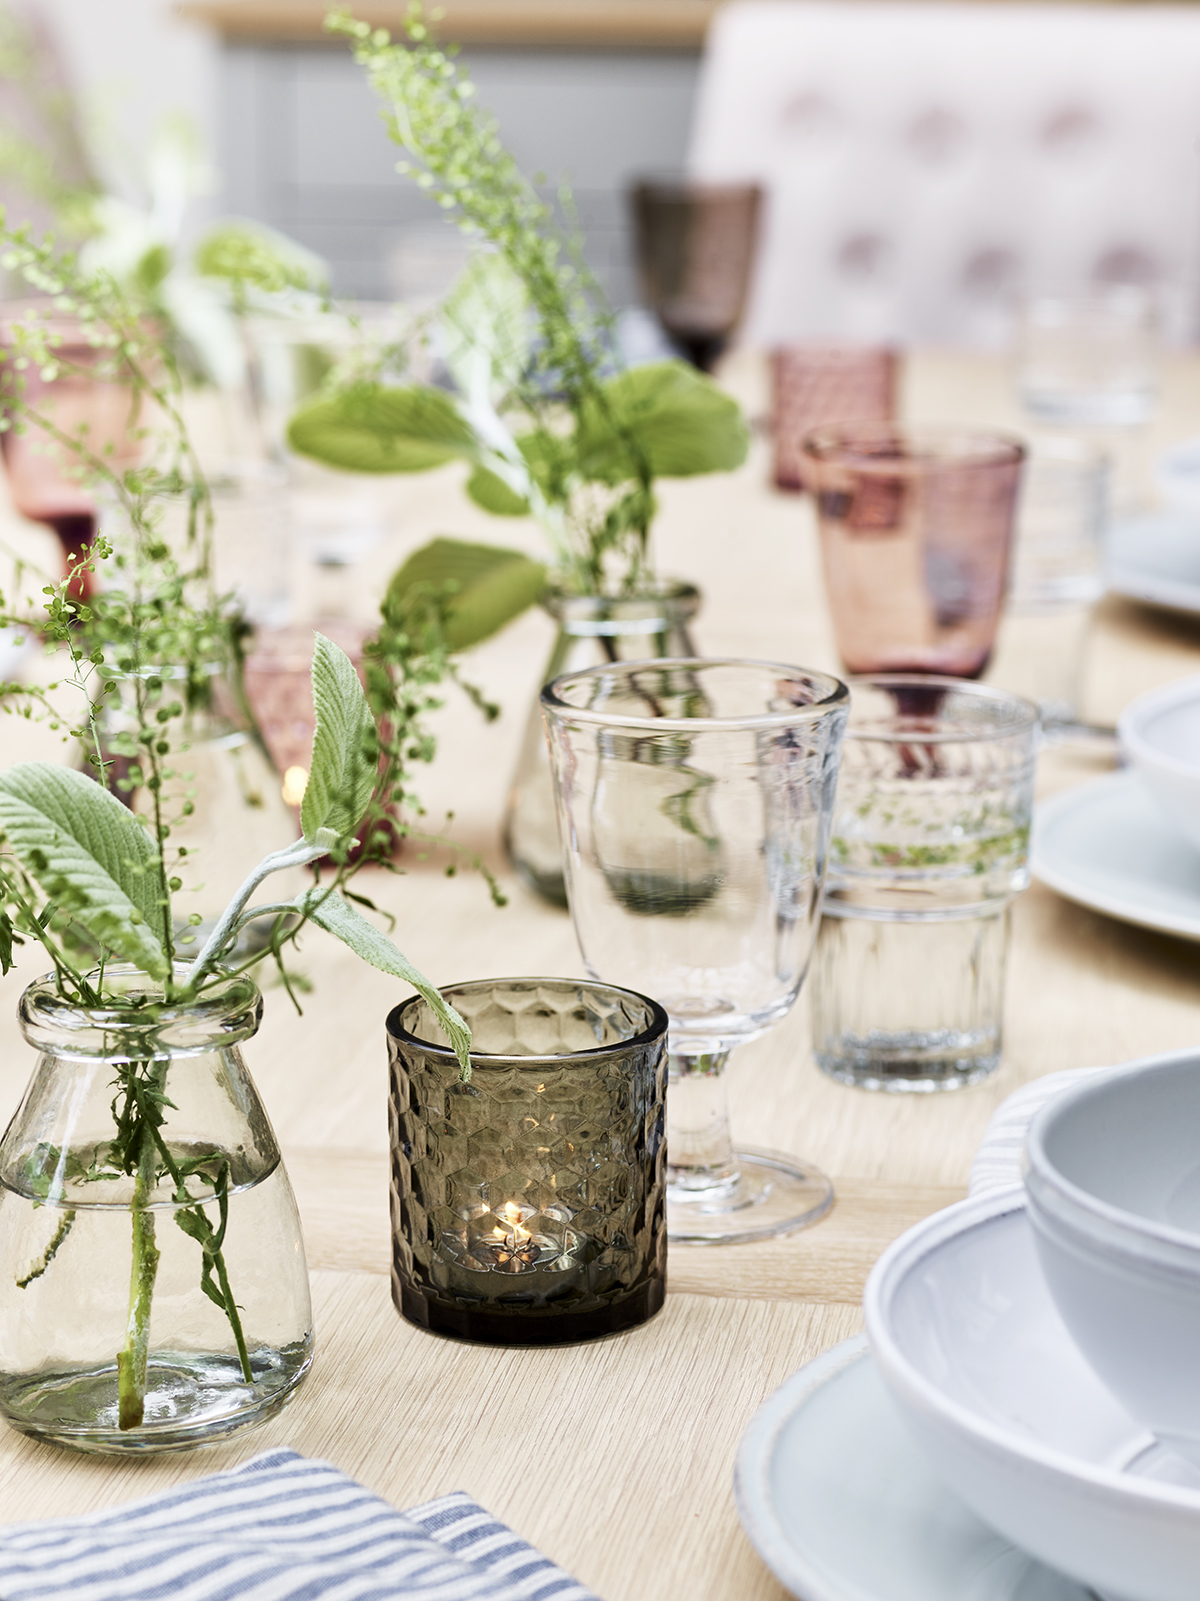 Coloured glassware and bud vases bring texture and seasonality to tablescapes